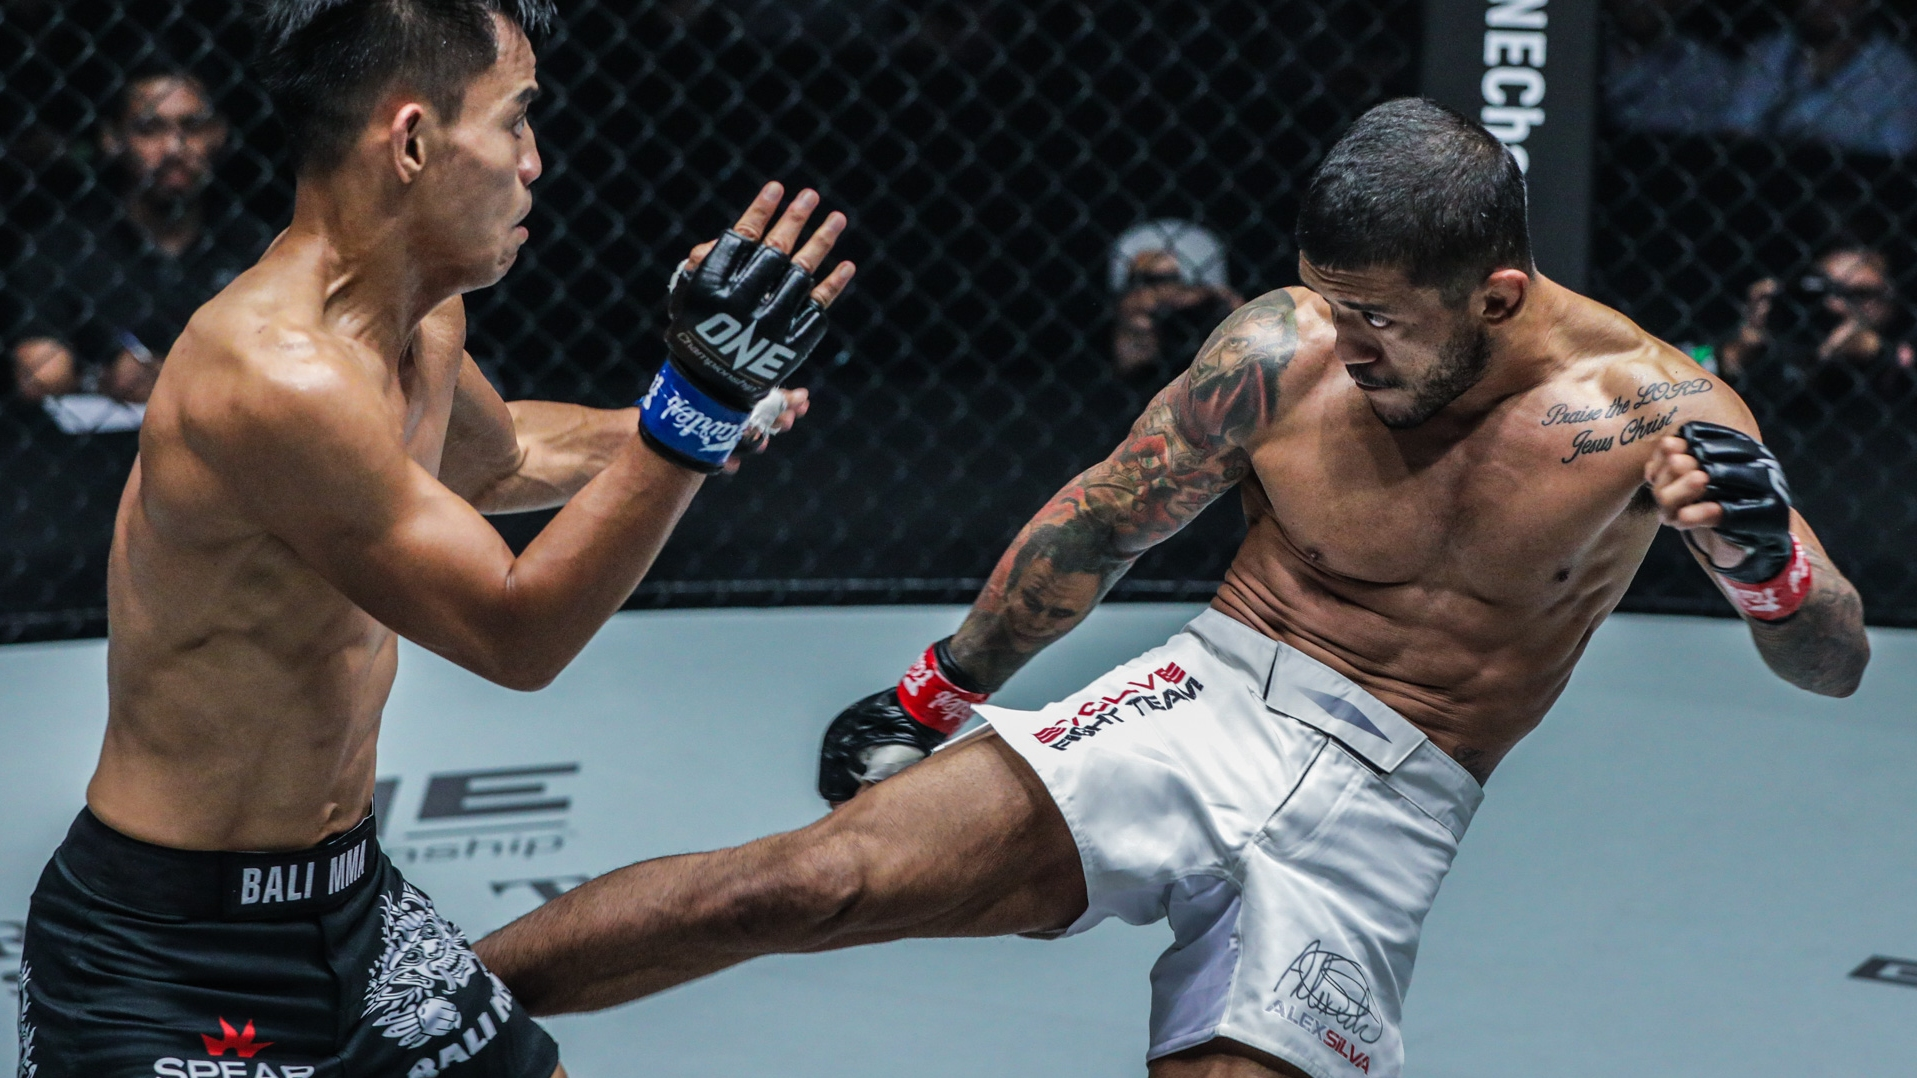 alex leg kick one championship